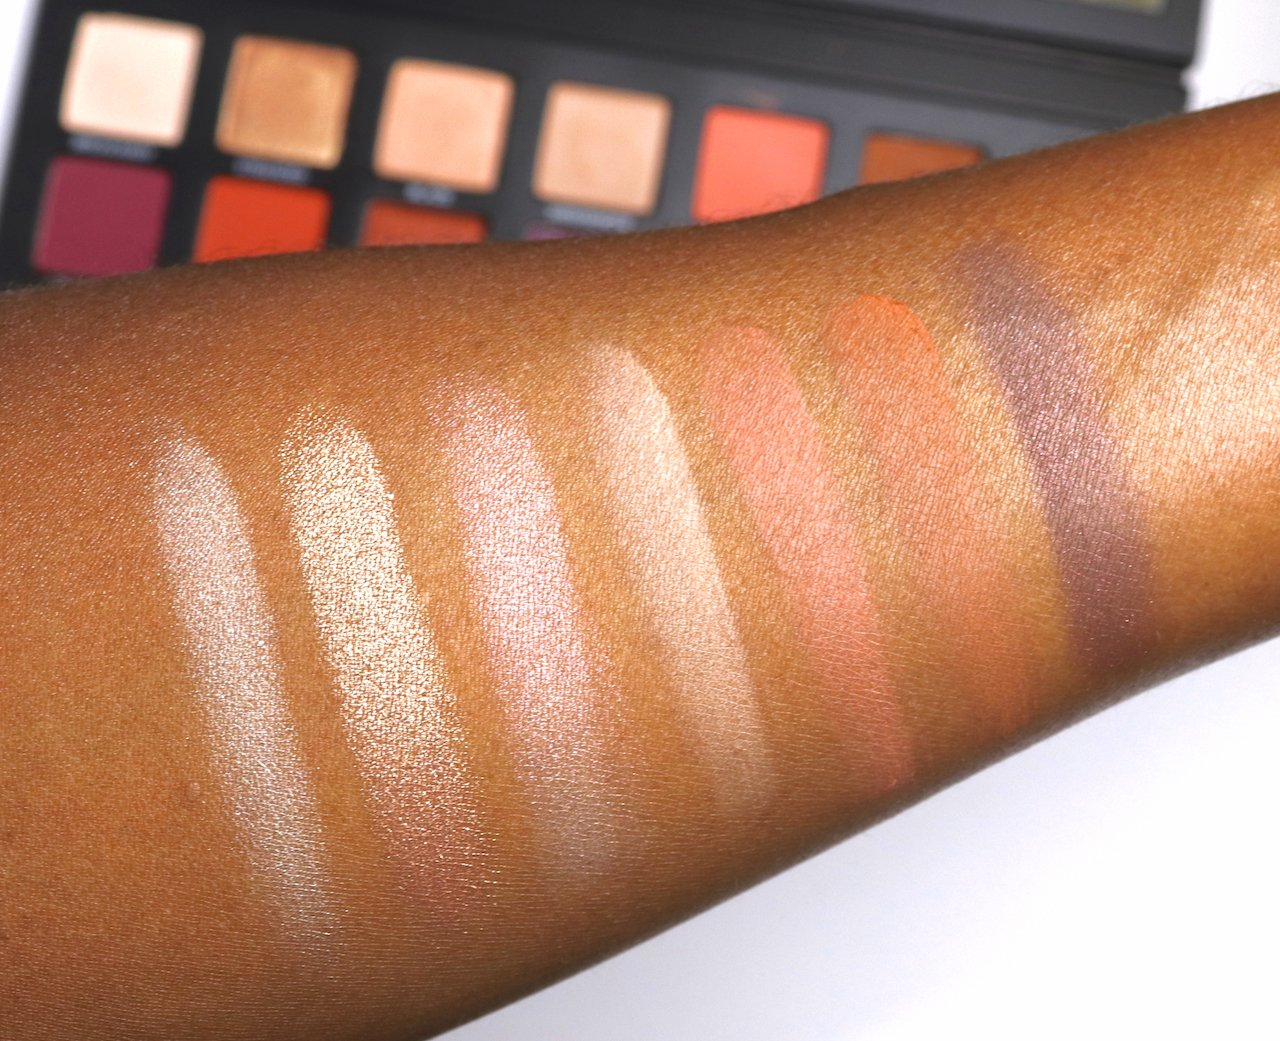 urban decay born to run eyeshadow palette swatches row 1